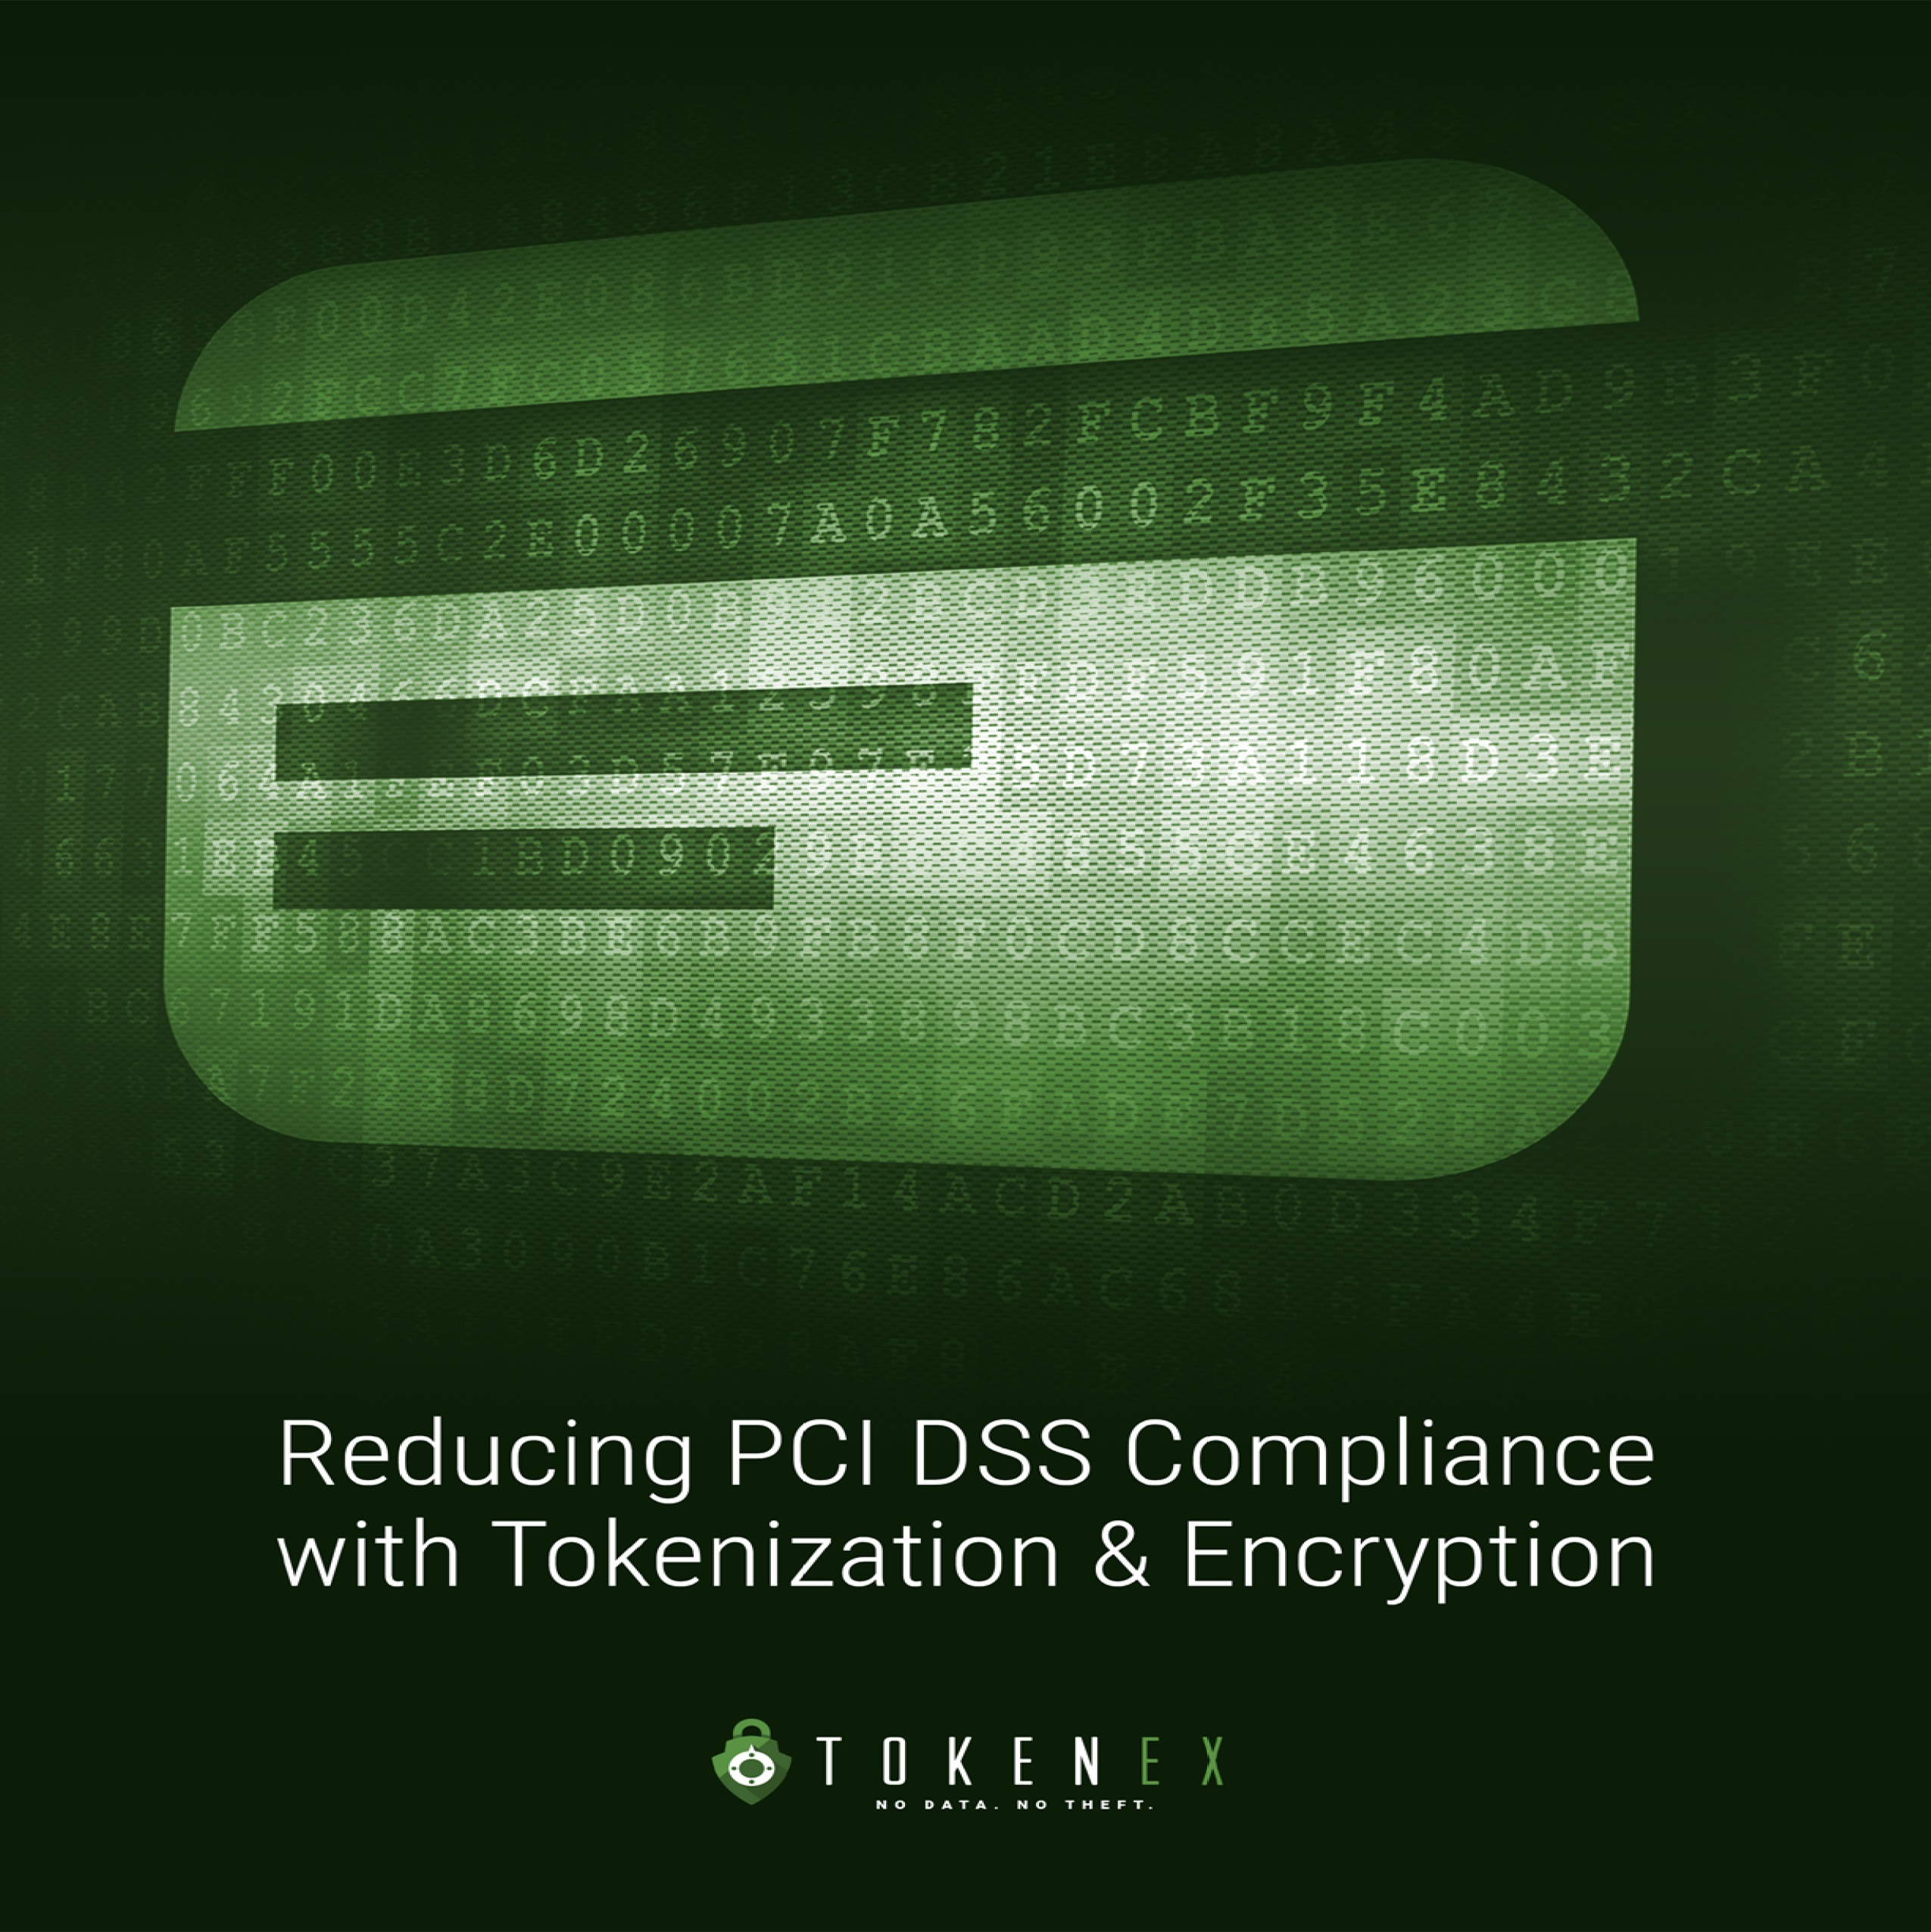 Reducing PCI DSS Compliance with Tokenization and Encryption_Square.jpg